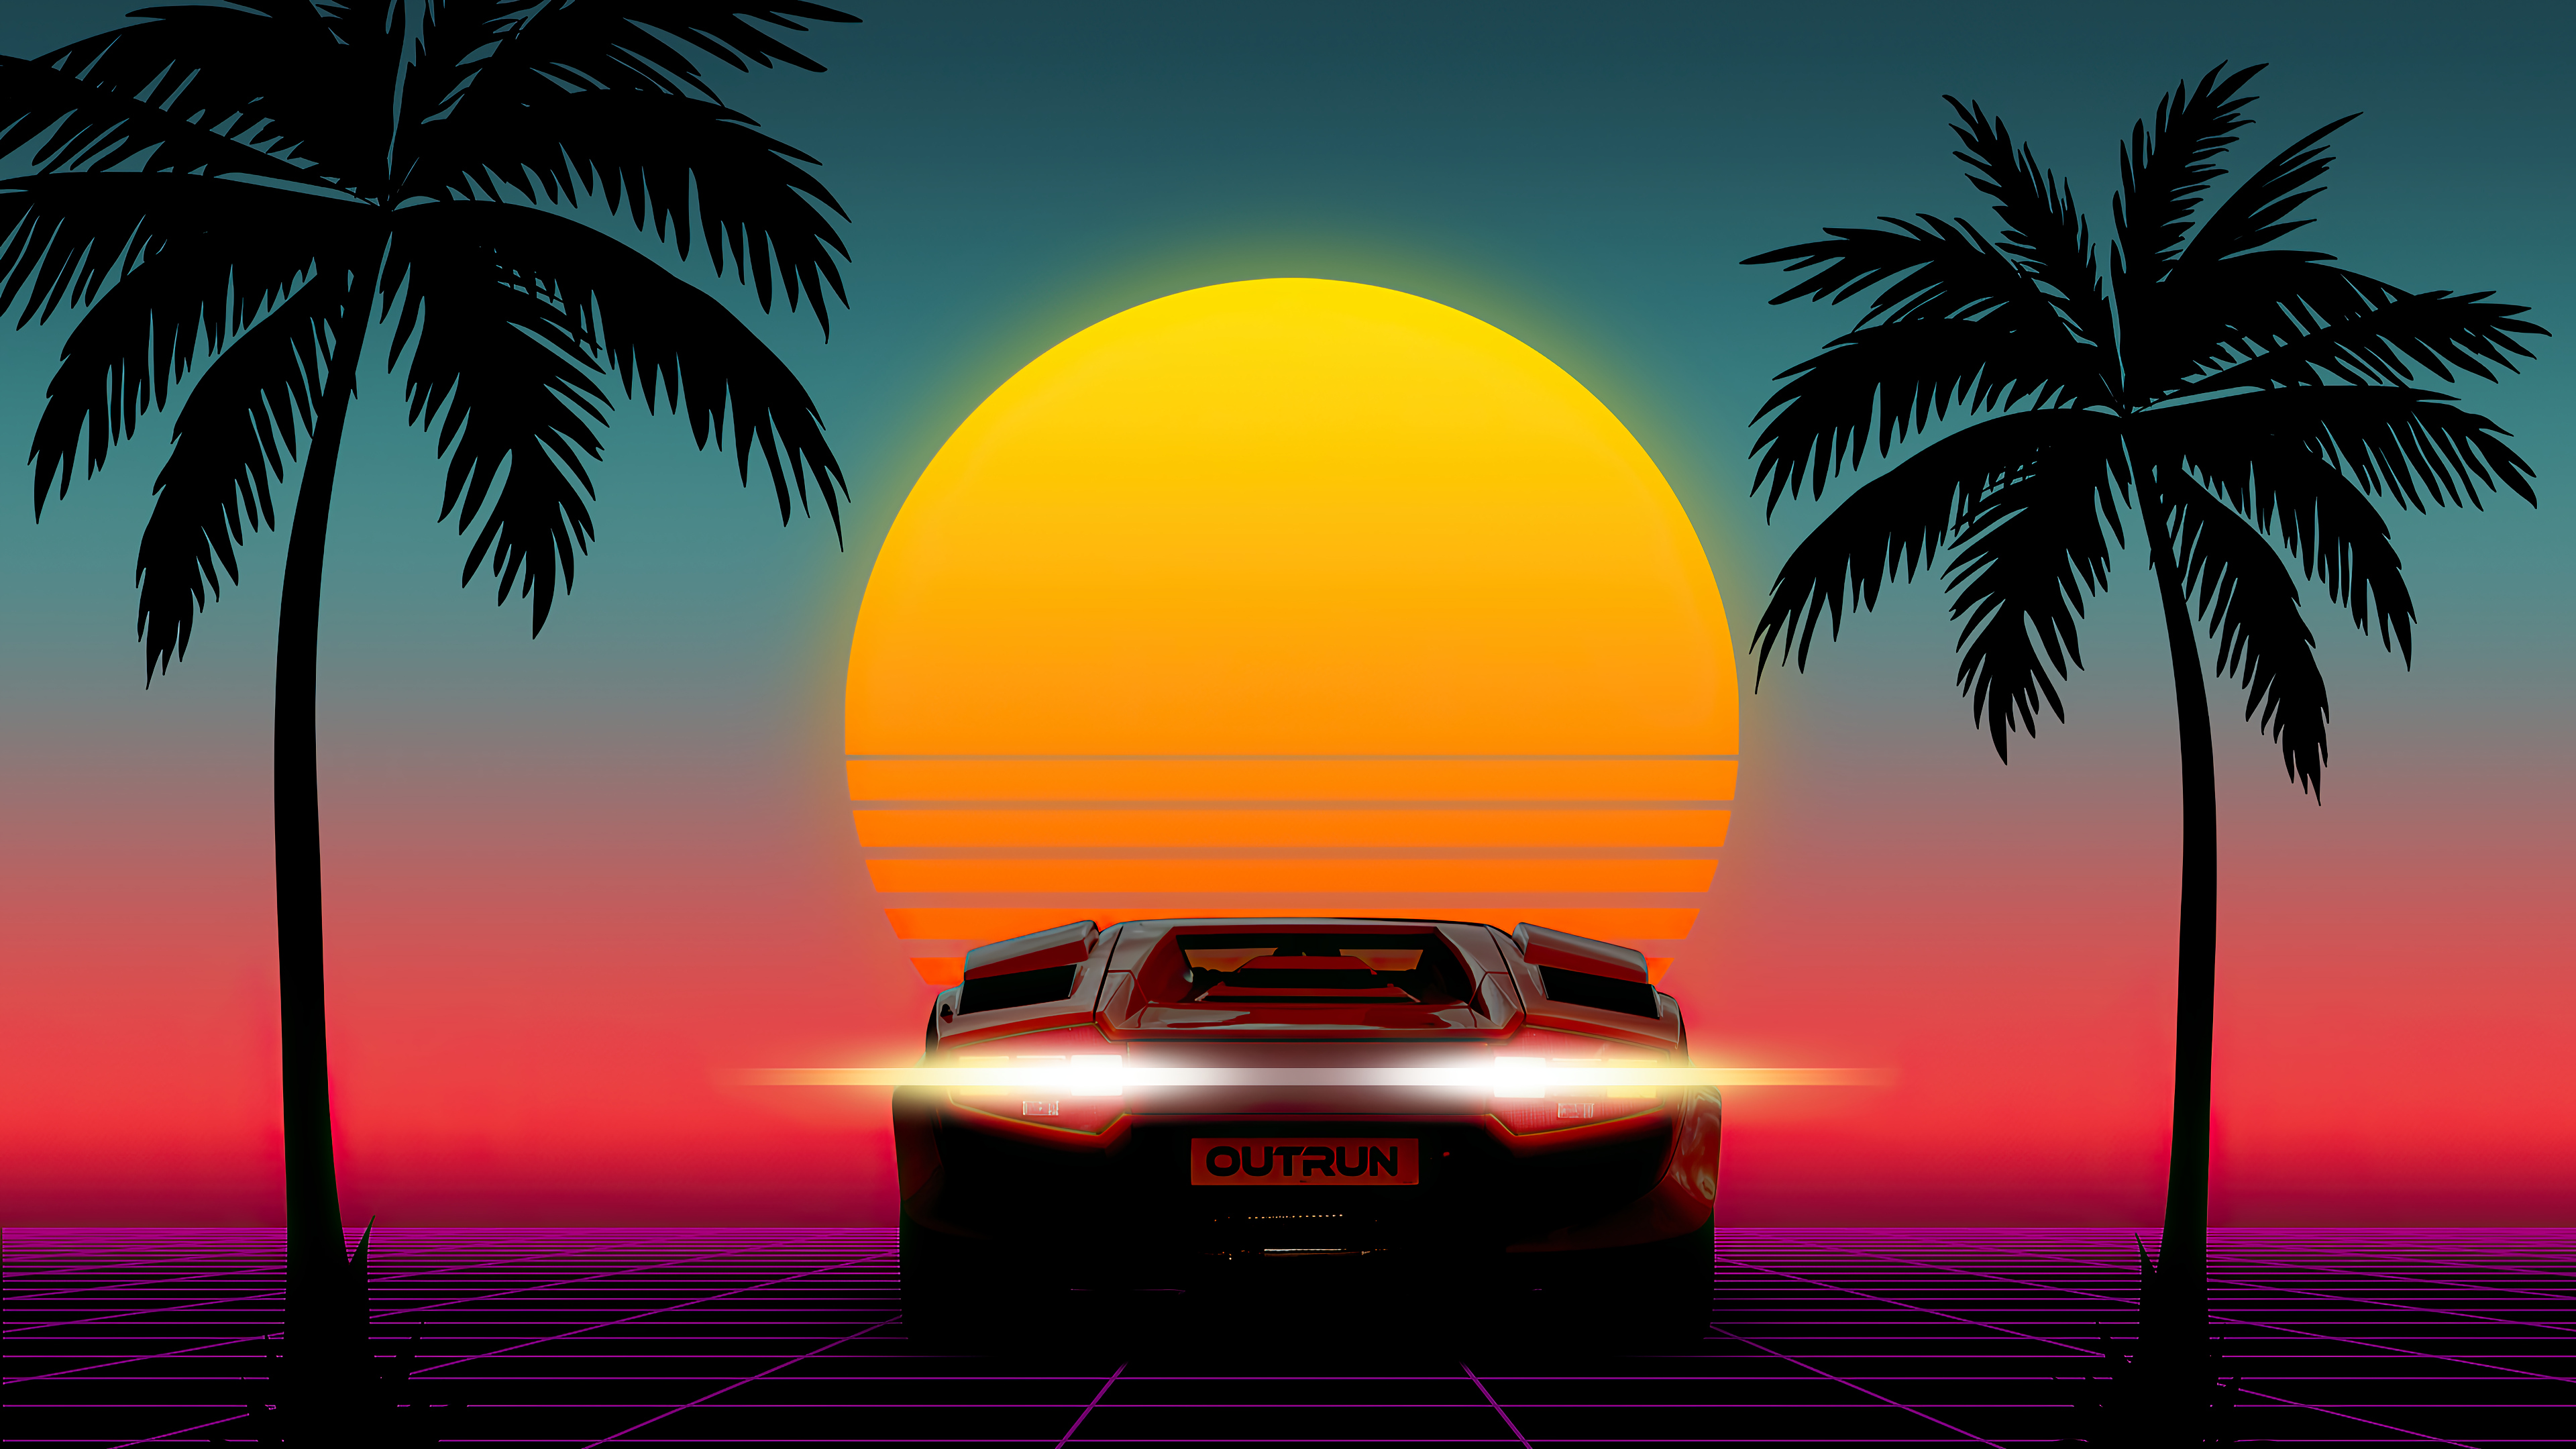 Customize your desktop, mobile phone and tablet with our wide variety of cool and interesting 4k wallpapers in just a few clicks! Sunset Minimalist Sports Car Palm Scenery 4k Wallpaper 6 2191